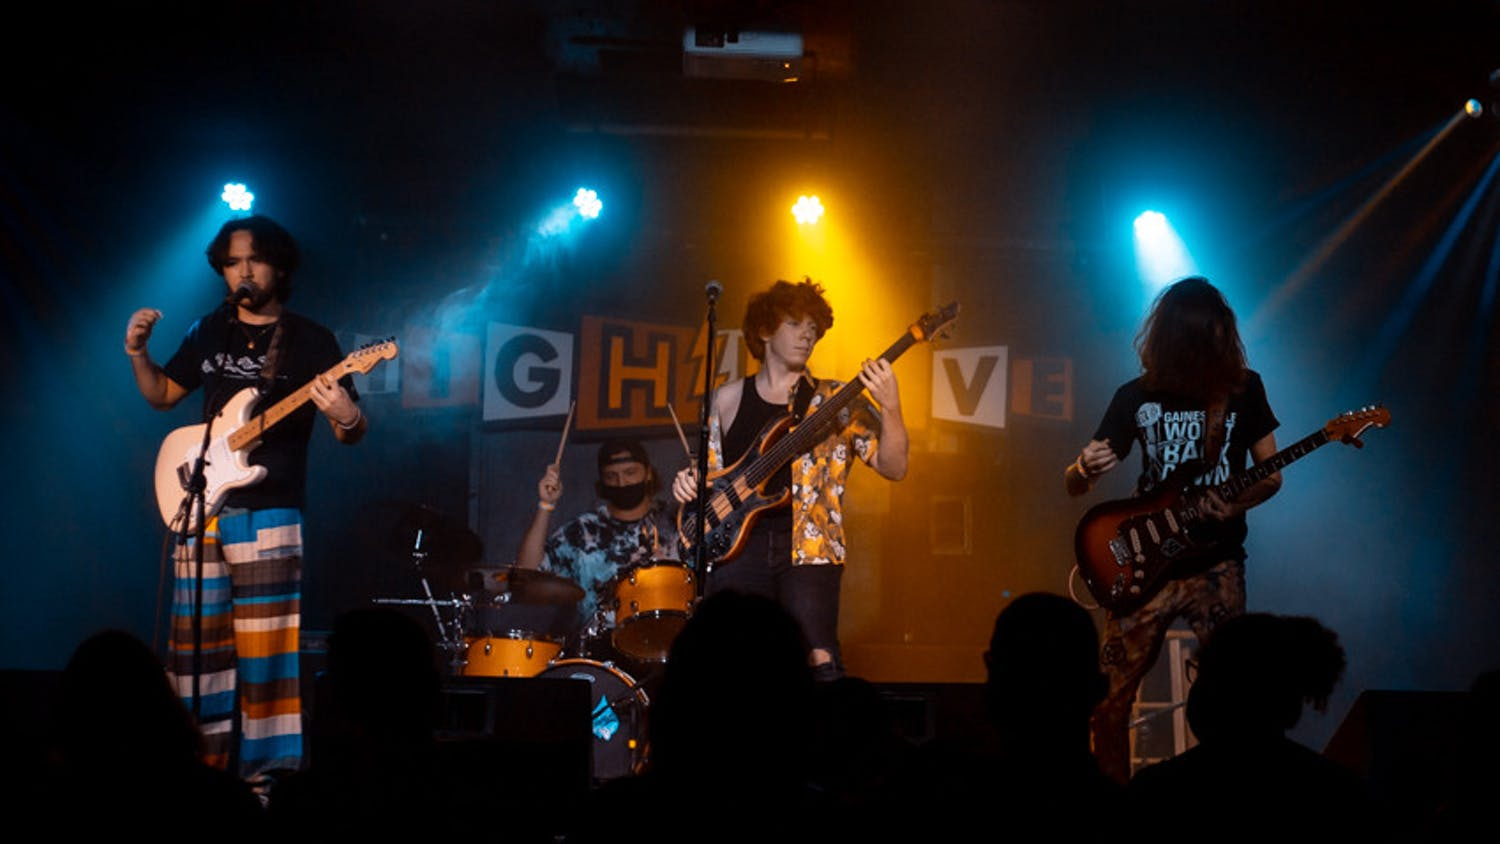 Driptones' last show at High Dive was Nov. 14, 2020, where they performed to a distanced and masked crowd at limited capacity.